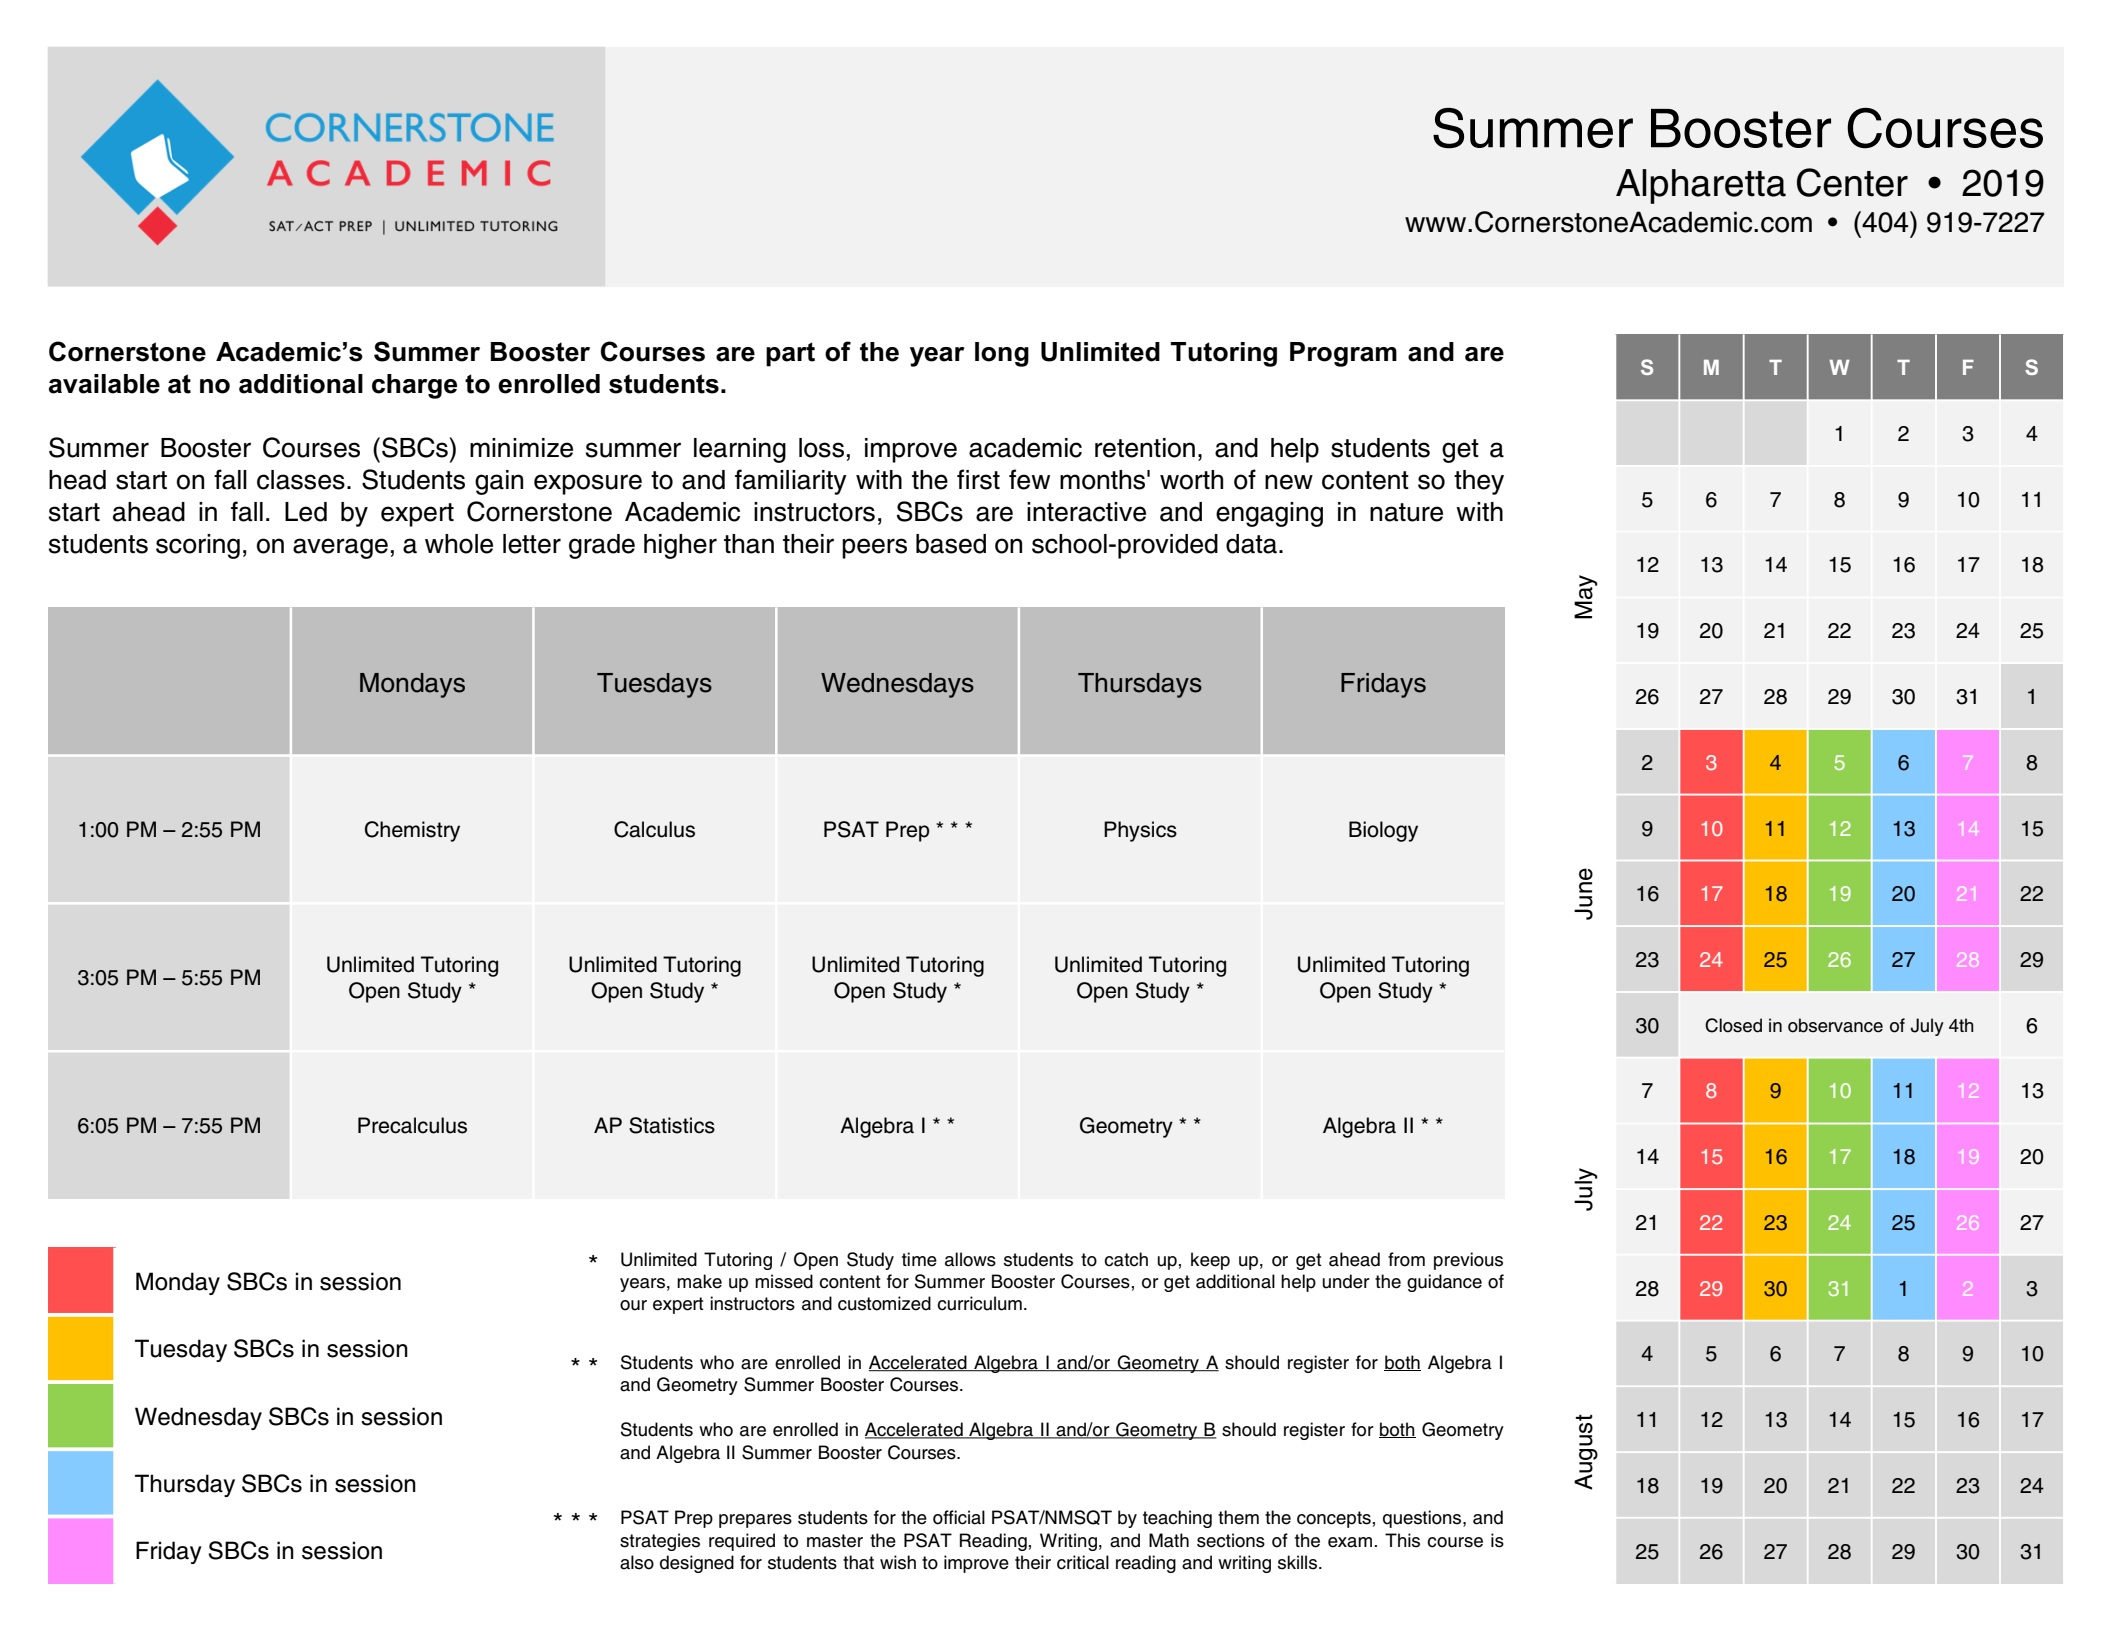 Summer 2019 Course Schedule Summer Booster Courses – Cornerstone Academic